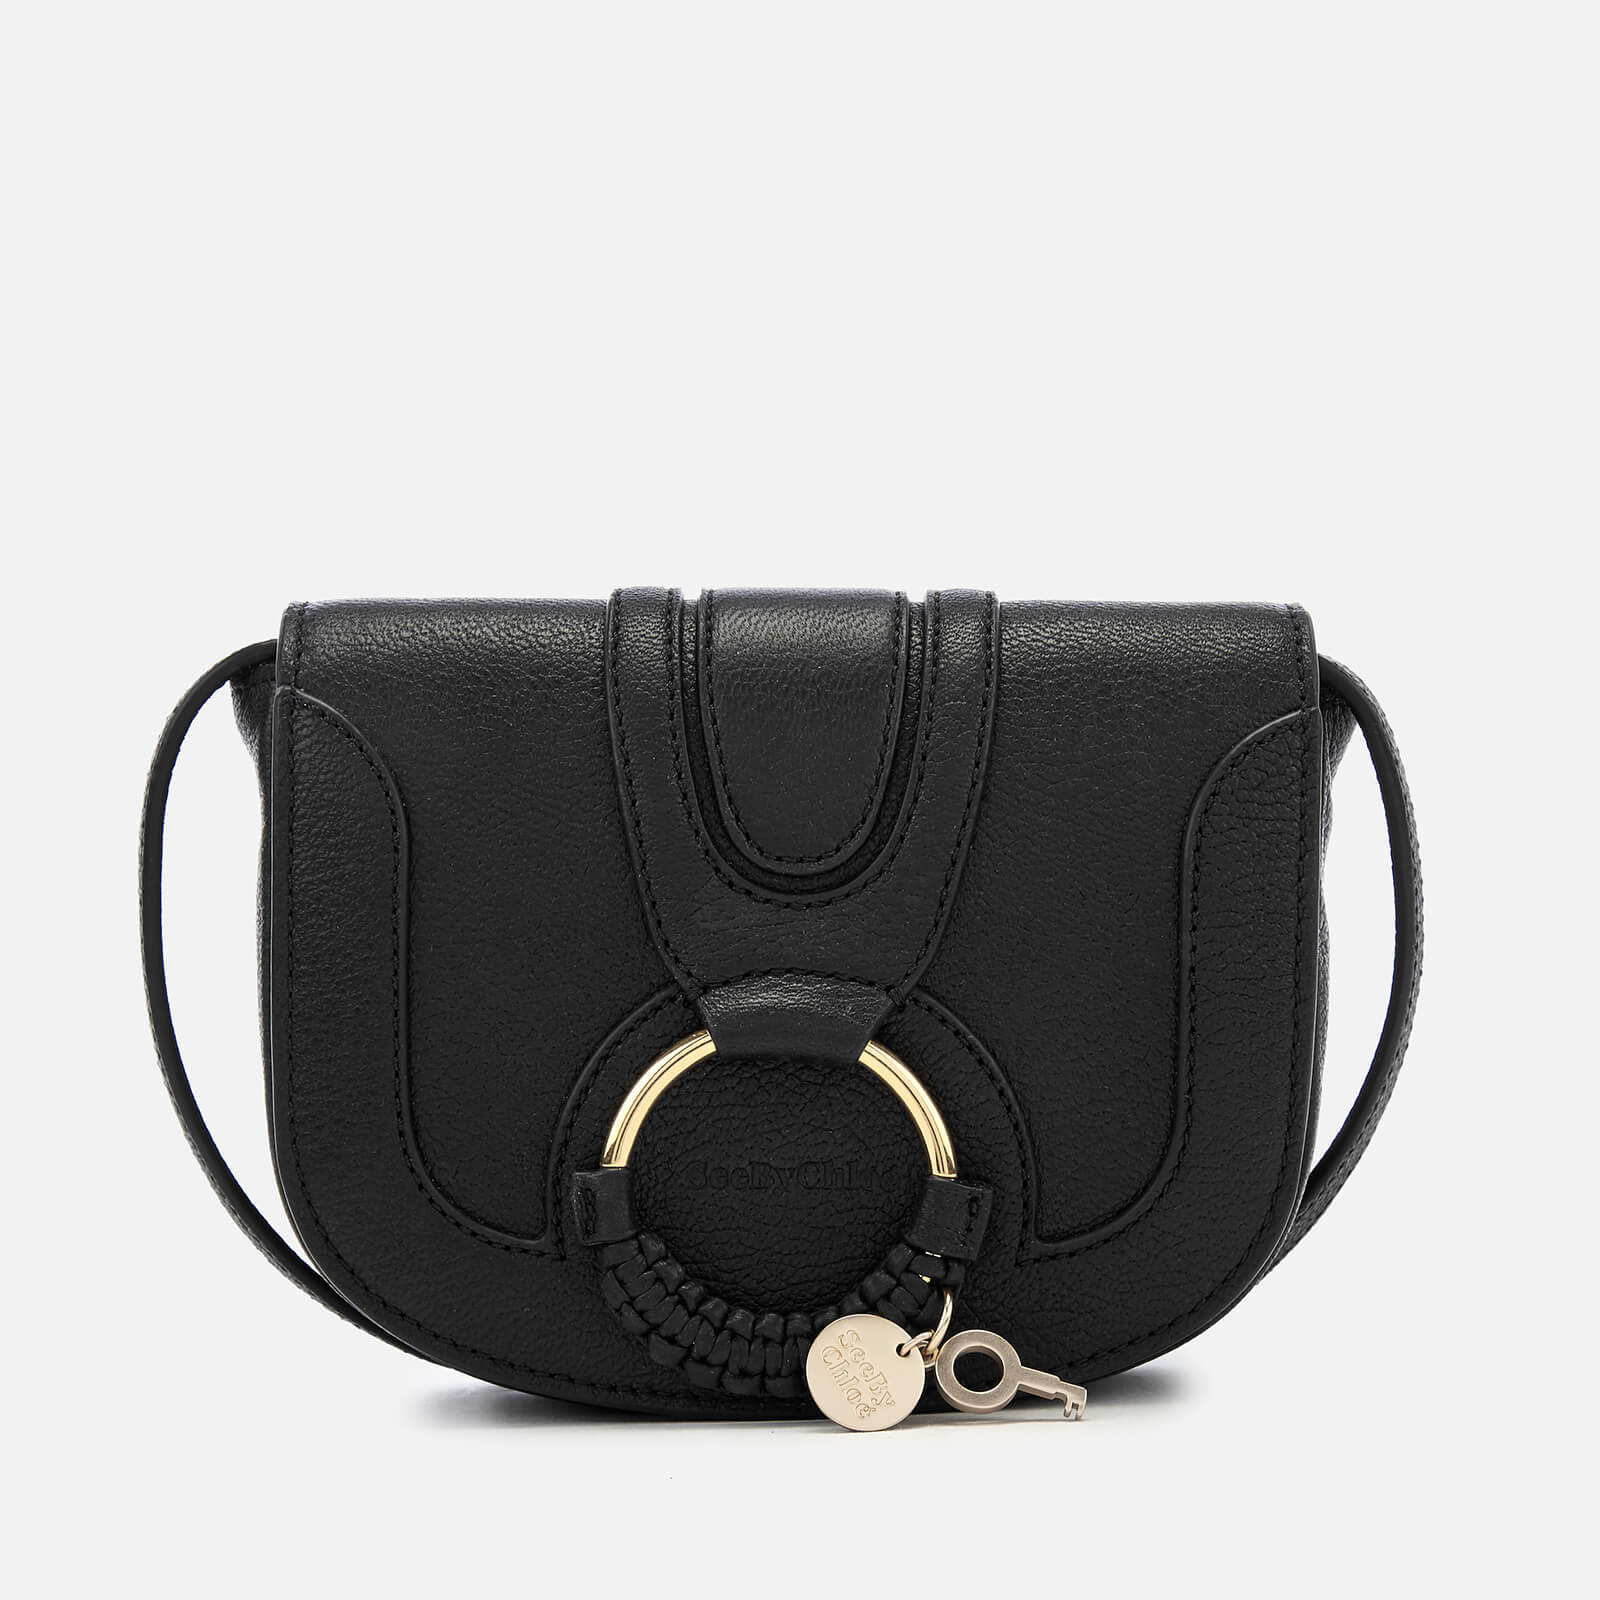 f56ef0fe17 See By Chloé Women's Mini Hana Cross Body Bag - Black